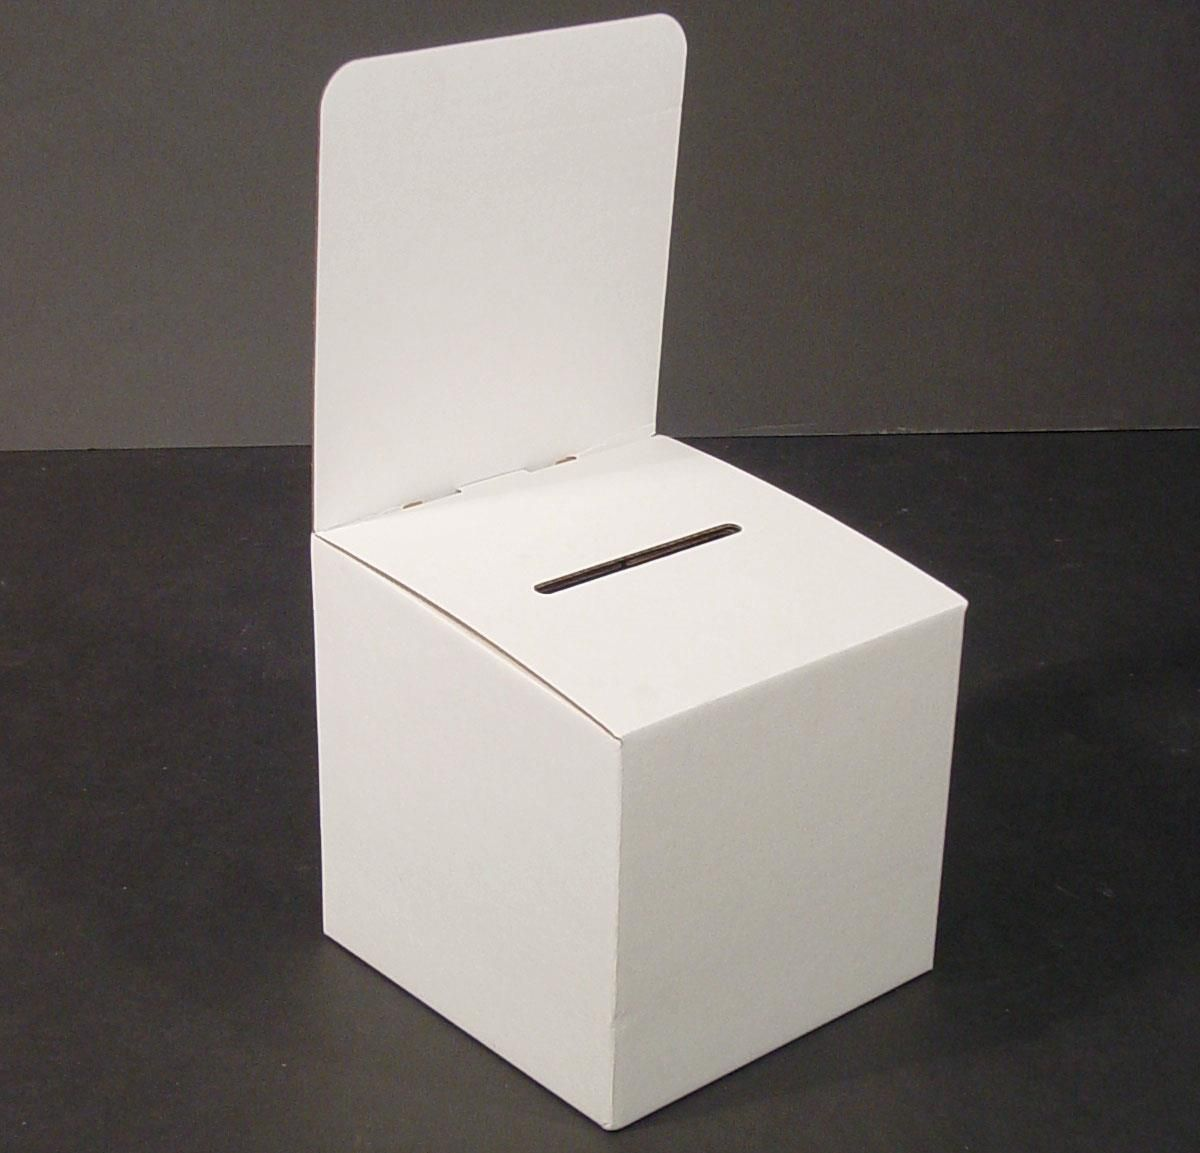 Cardboard Ballot Box Removable Header Slanted Top White Suggestion Box Raffle Box Donation Box